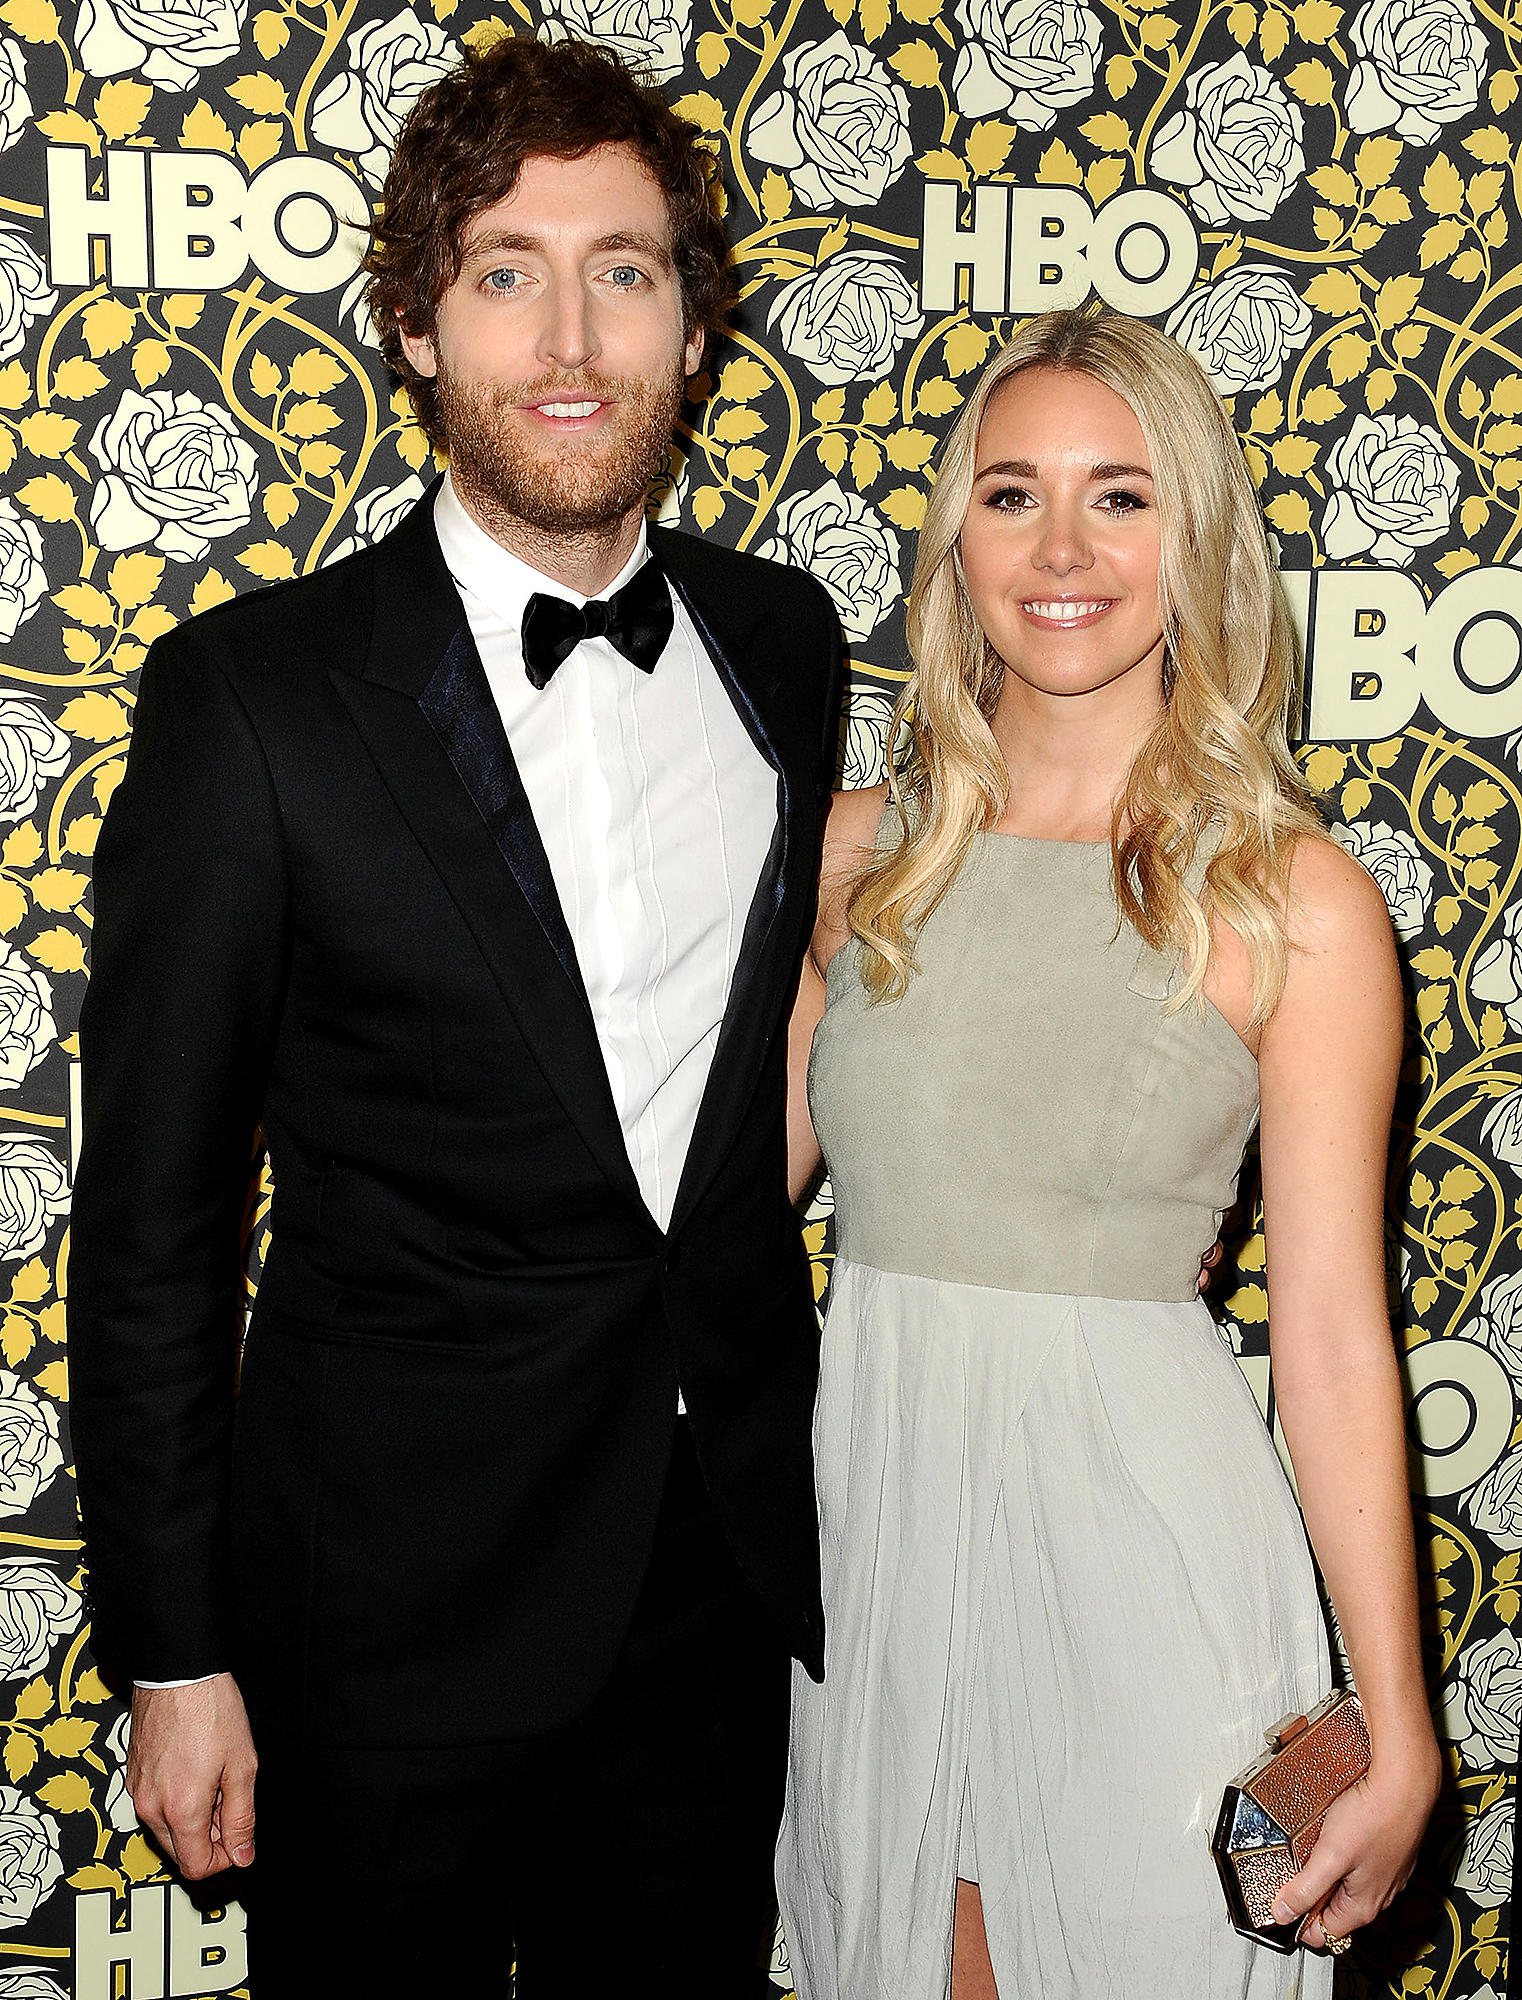 Thomas Middleditch and wife Mollie Gates